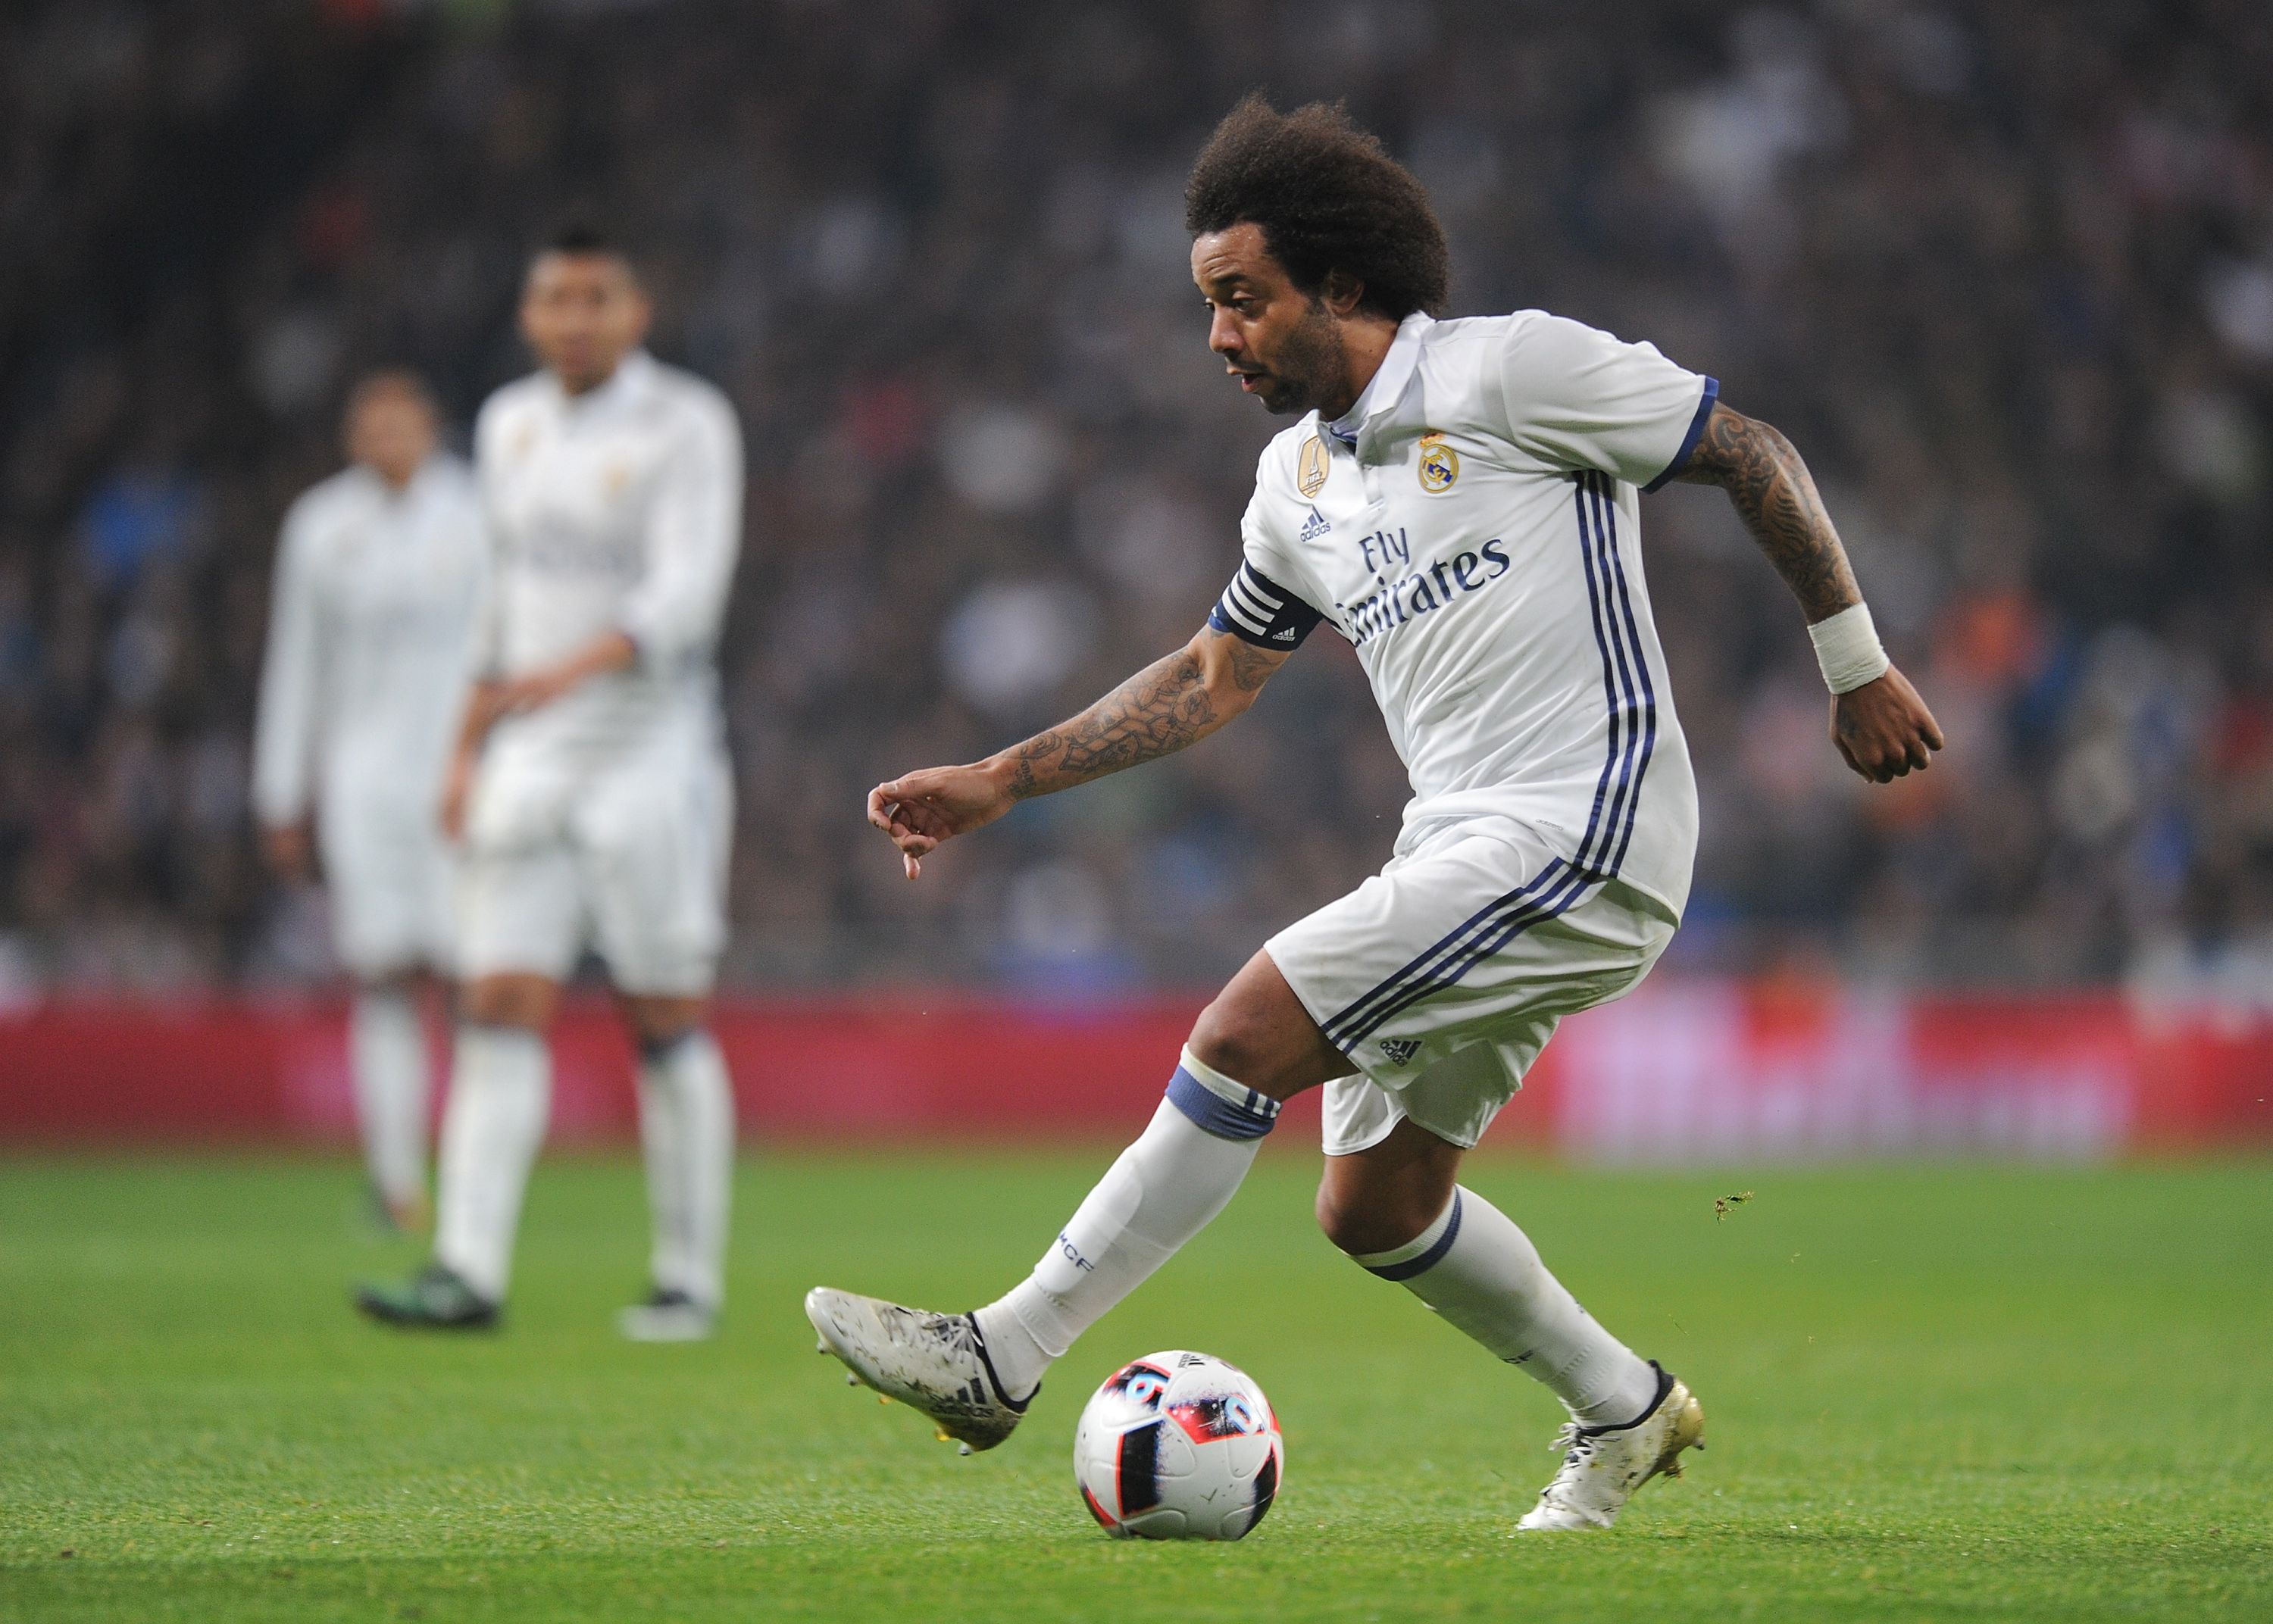 Finishing off the back 4 is Real Madrid left back Marcelo